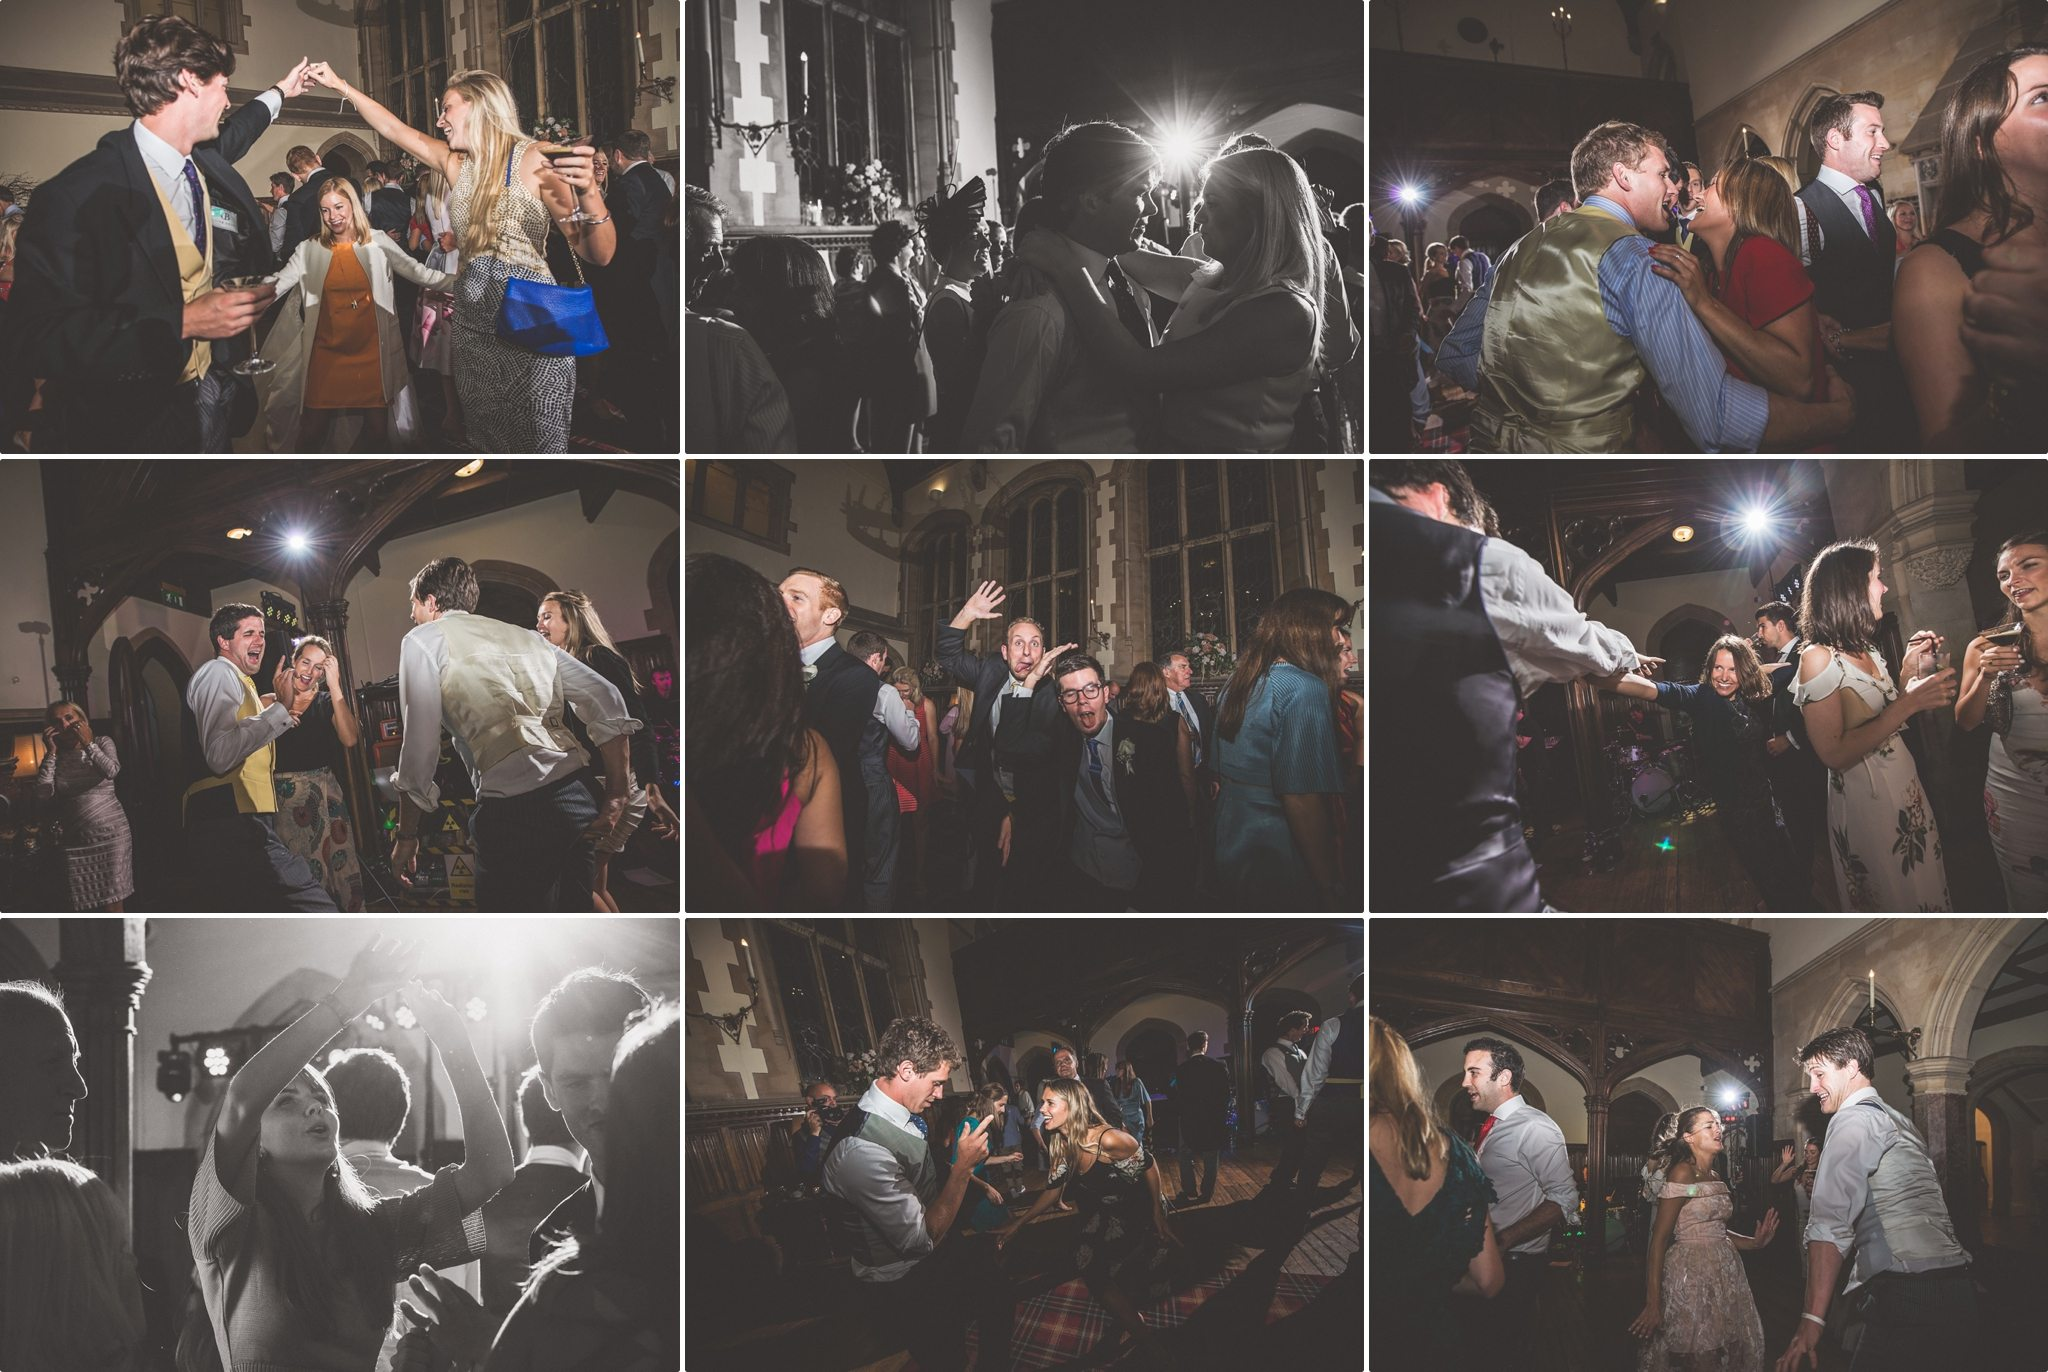 st-audries-park-wedding-maria-assia-photography-658